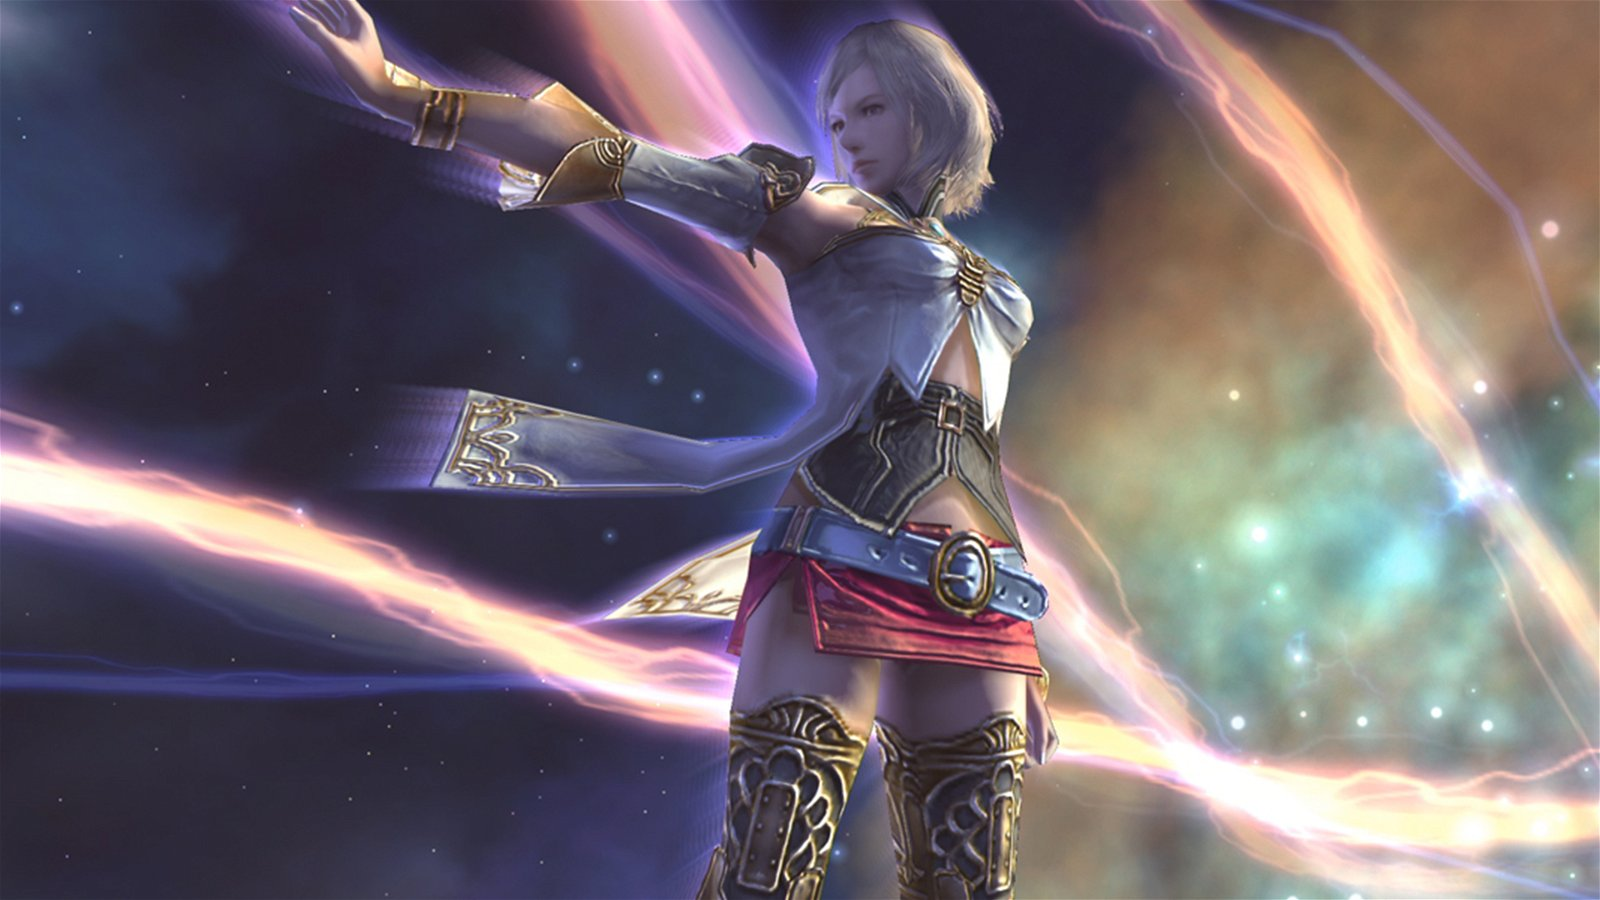 Final Fantasy XII: The Zodiac Age (PS4) Review - Knights of the Zodi-Ech 12